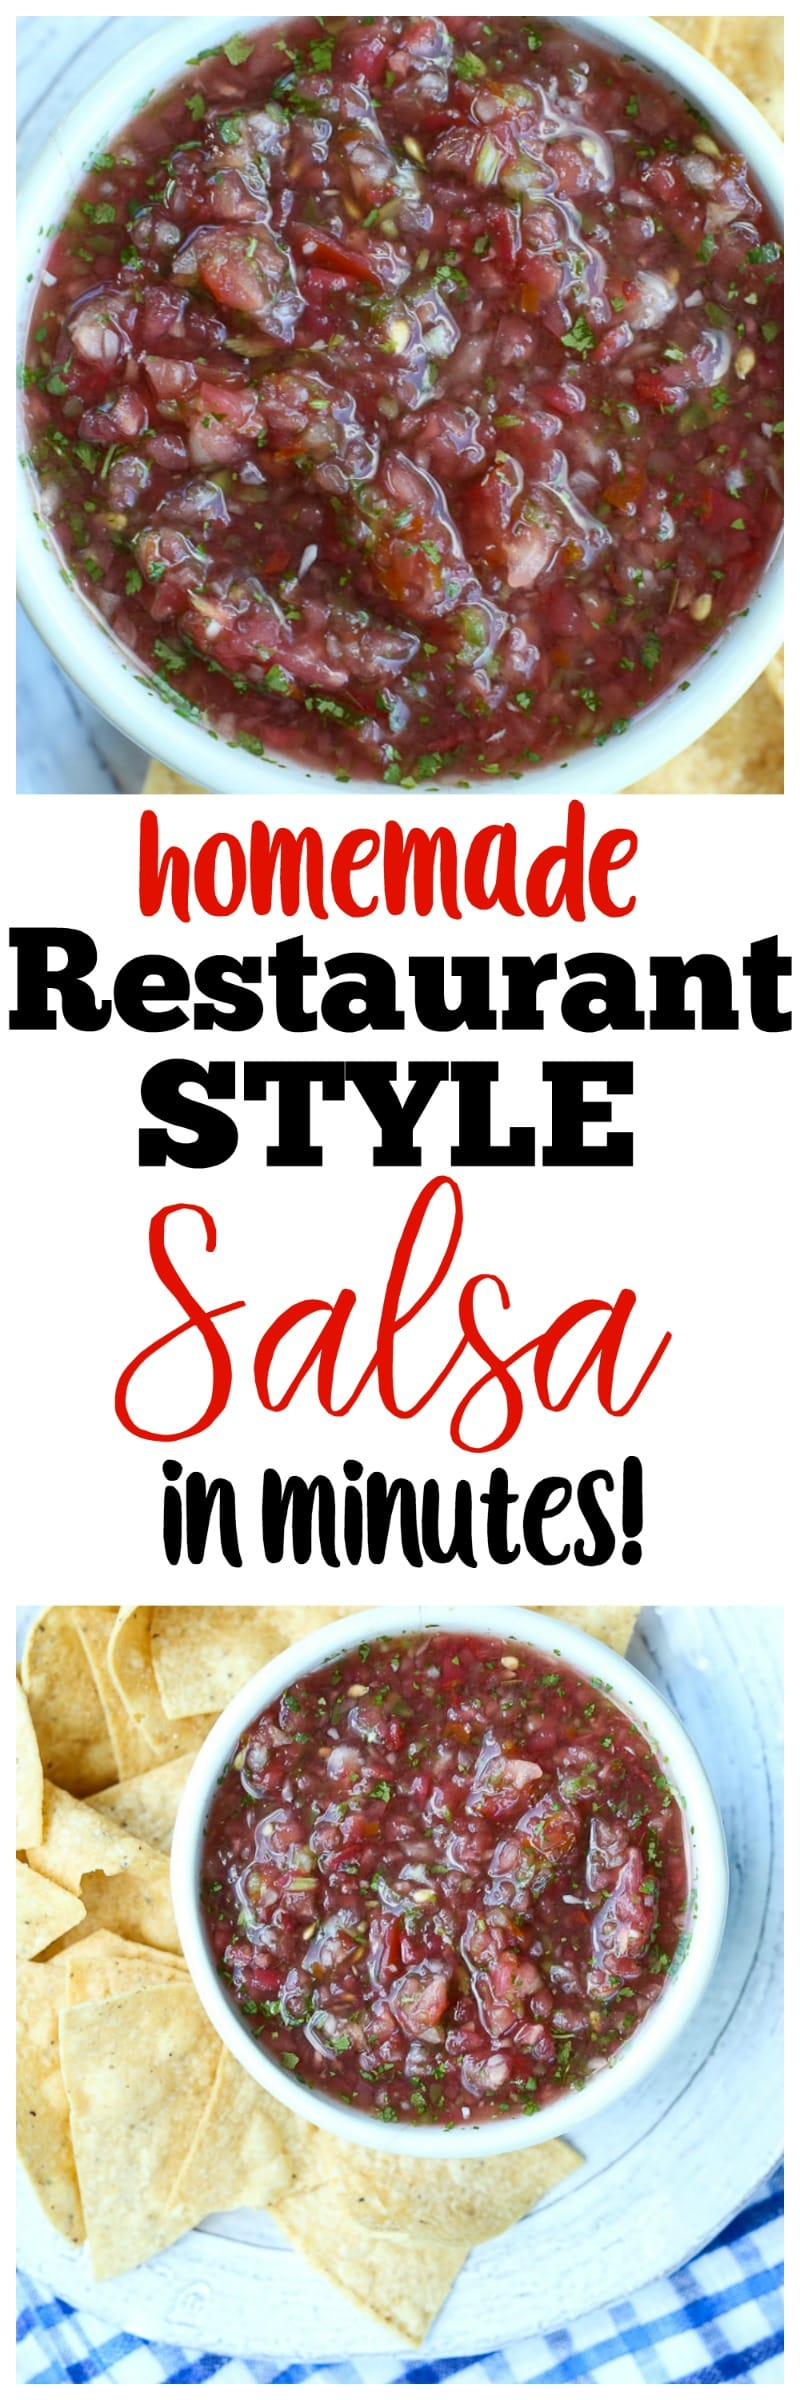 This restaurant style salsa recipe is made with fresh tomatoes and is ready in minutes! Quick, easy, delicious! The BEST! vegan | gluten-free | healthy | Paleo | snack | appetizer